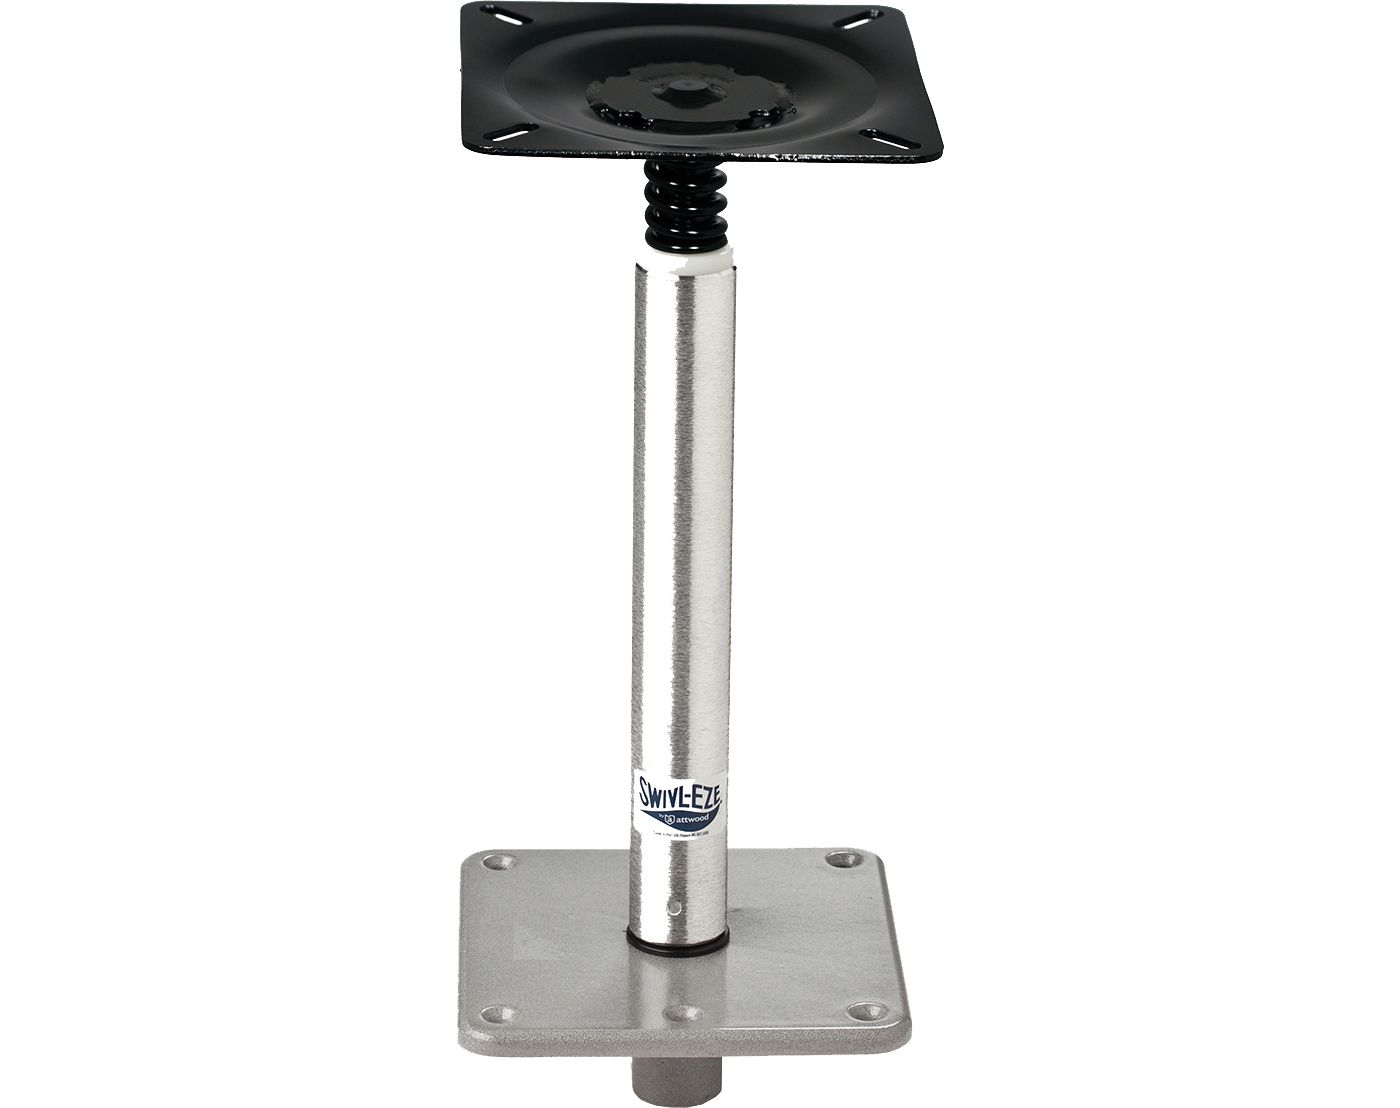 Attwood Swivl-Eze Pedestal Kit